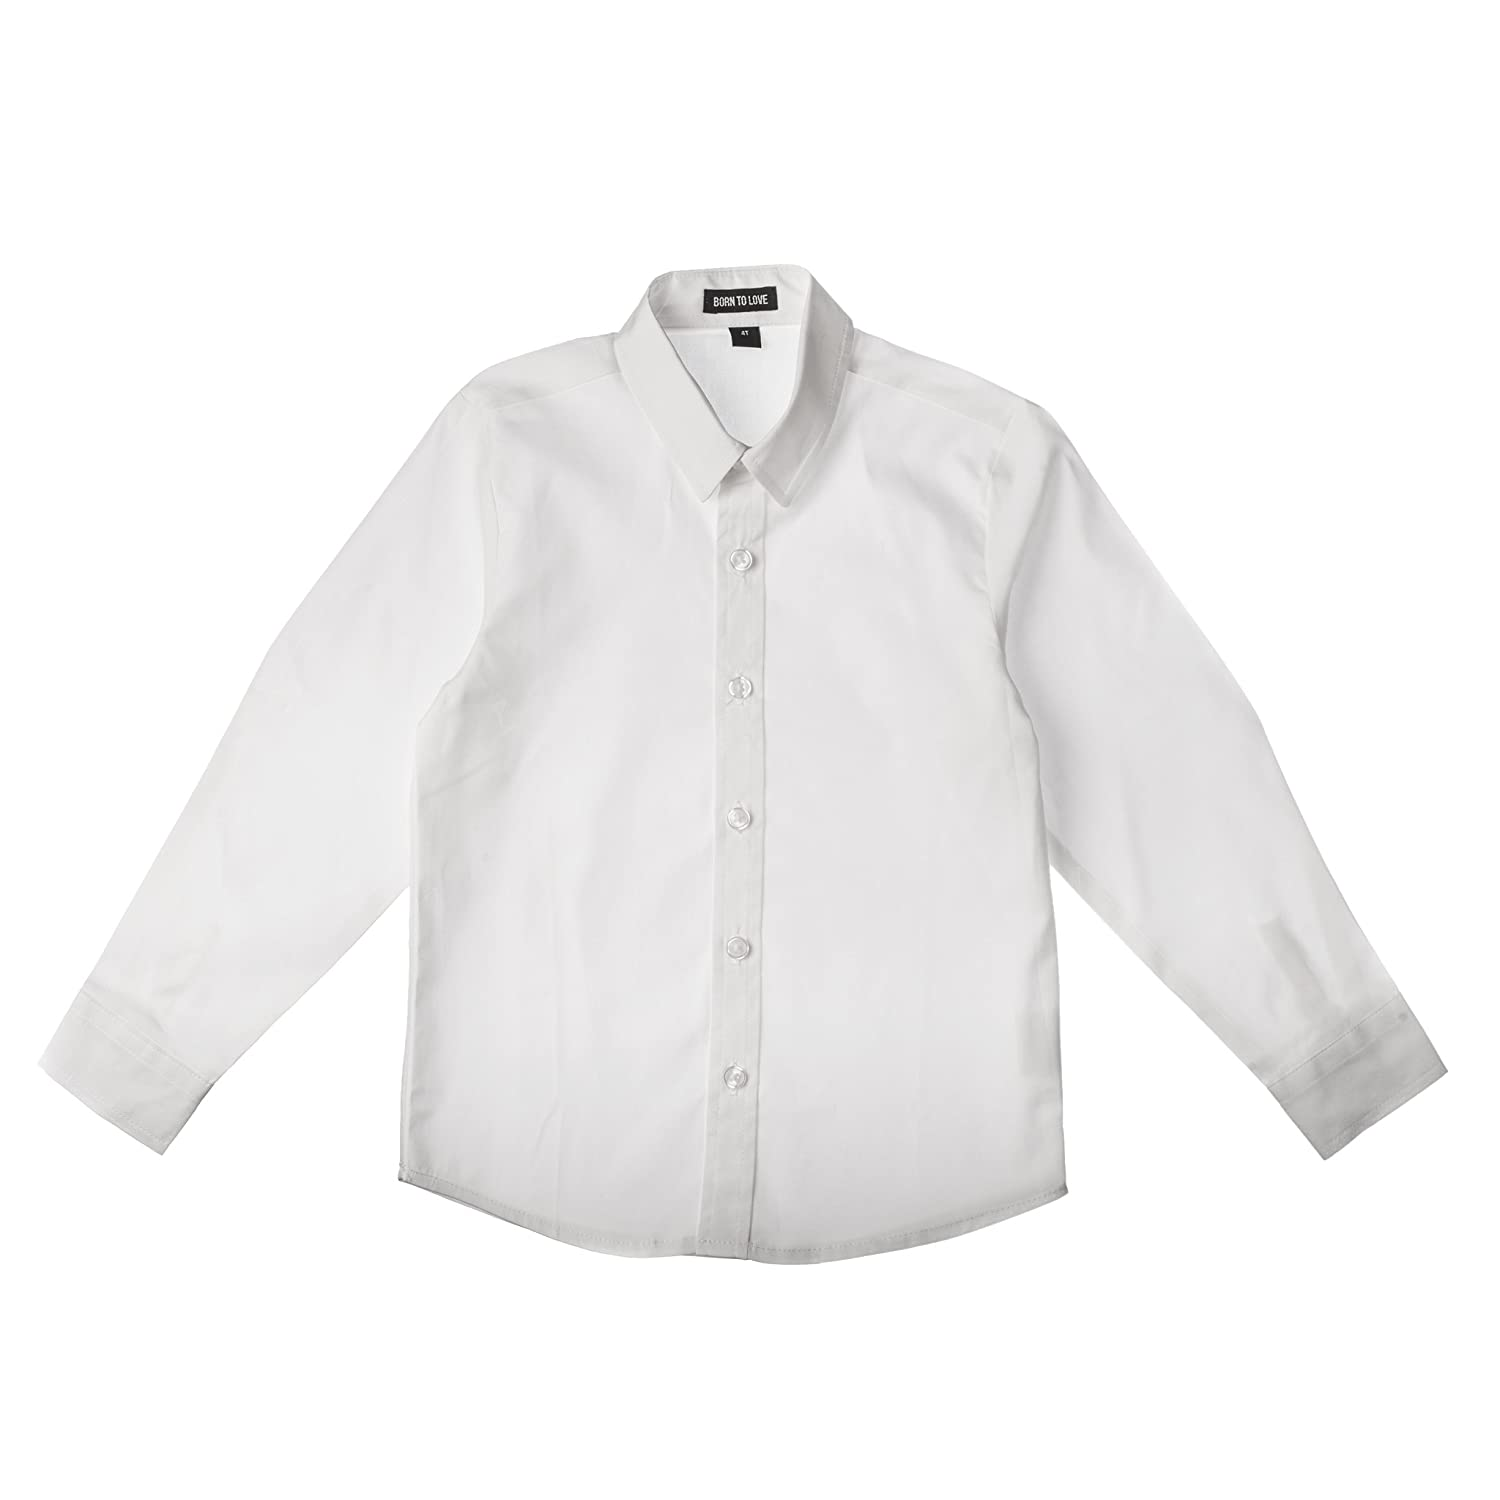 Wedding Baptism Birthday Boys White Button-Up Shirt /… Born to Love